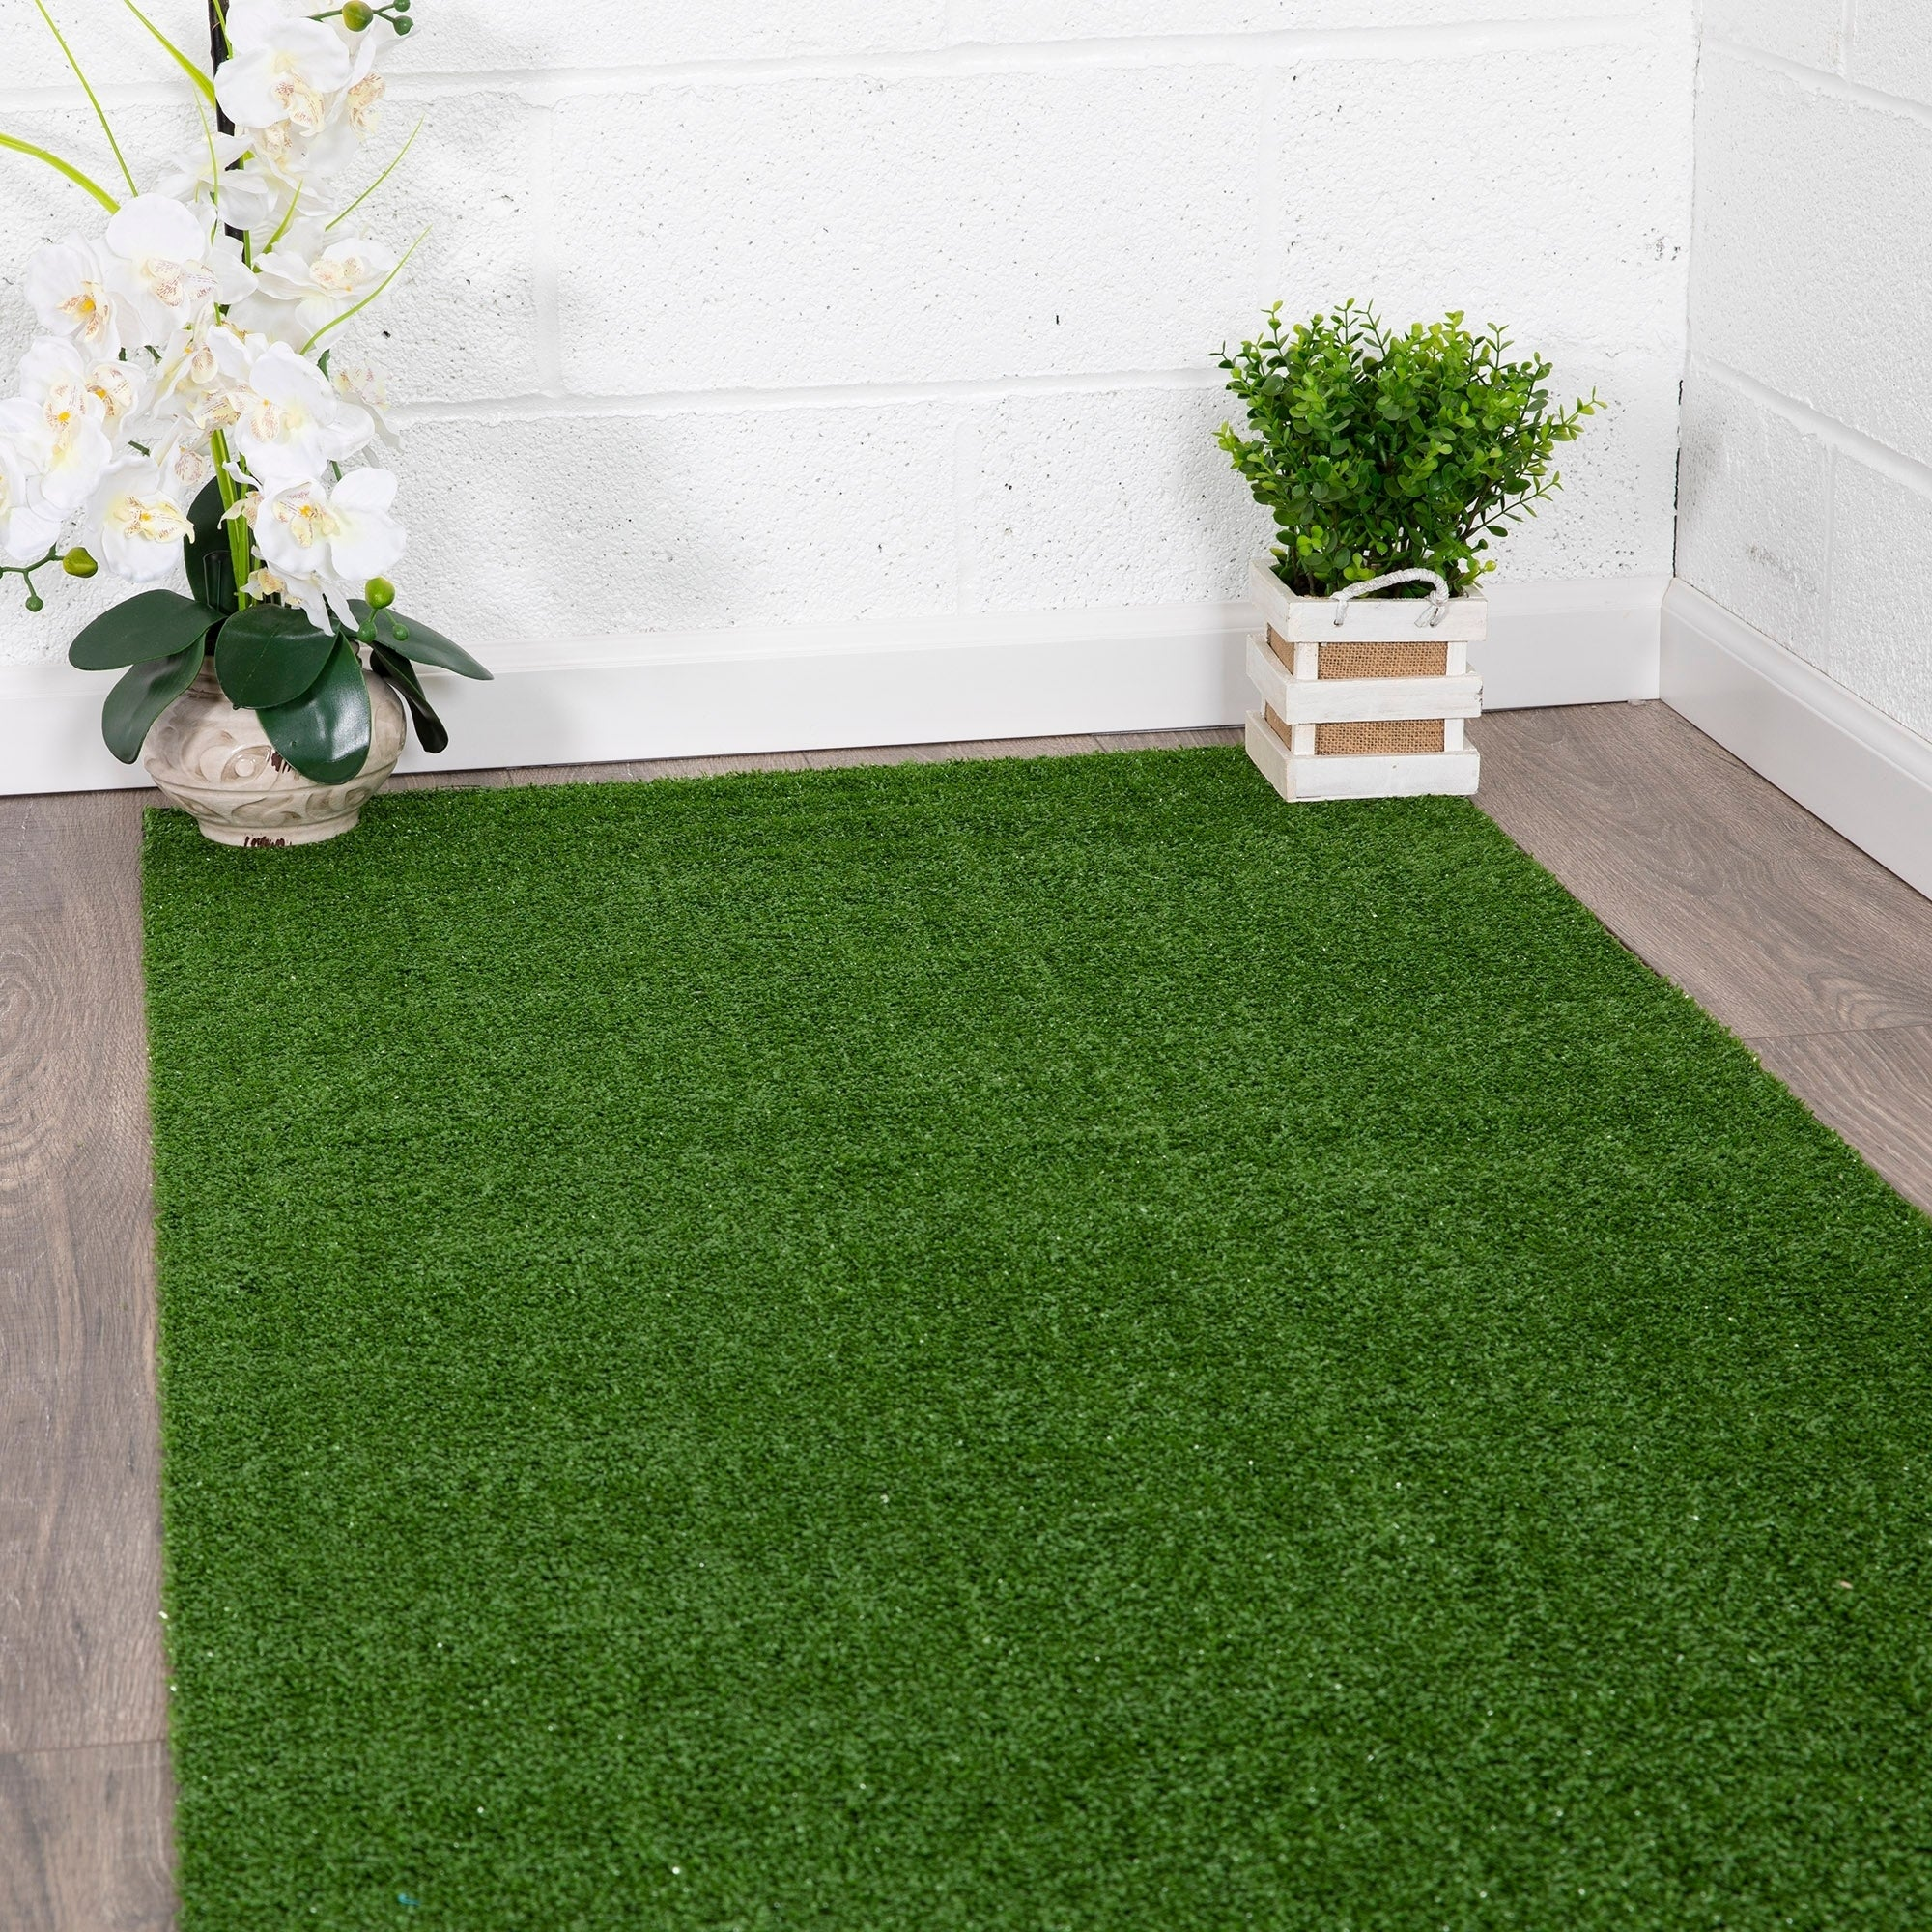 Shop Black Friday Deals On Ottomanson Evergreen Indoor Outdoor Artificial Grass Turf Area Rug On Sale Overstock 10410707 1 8 X 4 11 Red